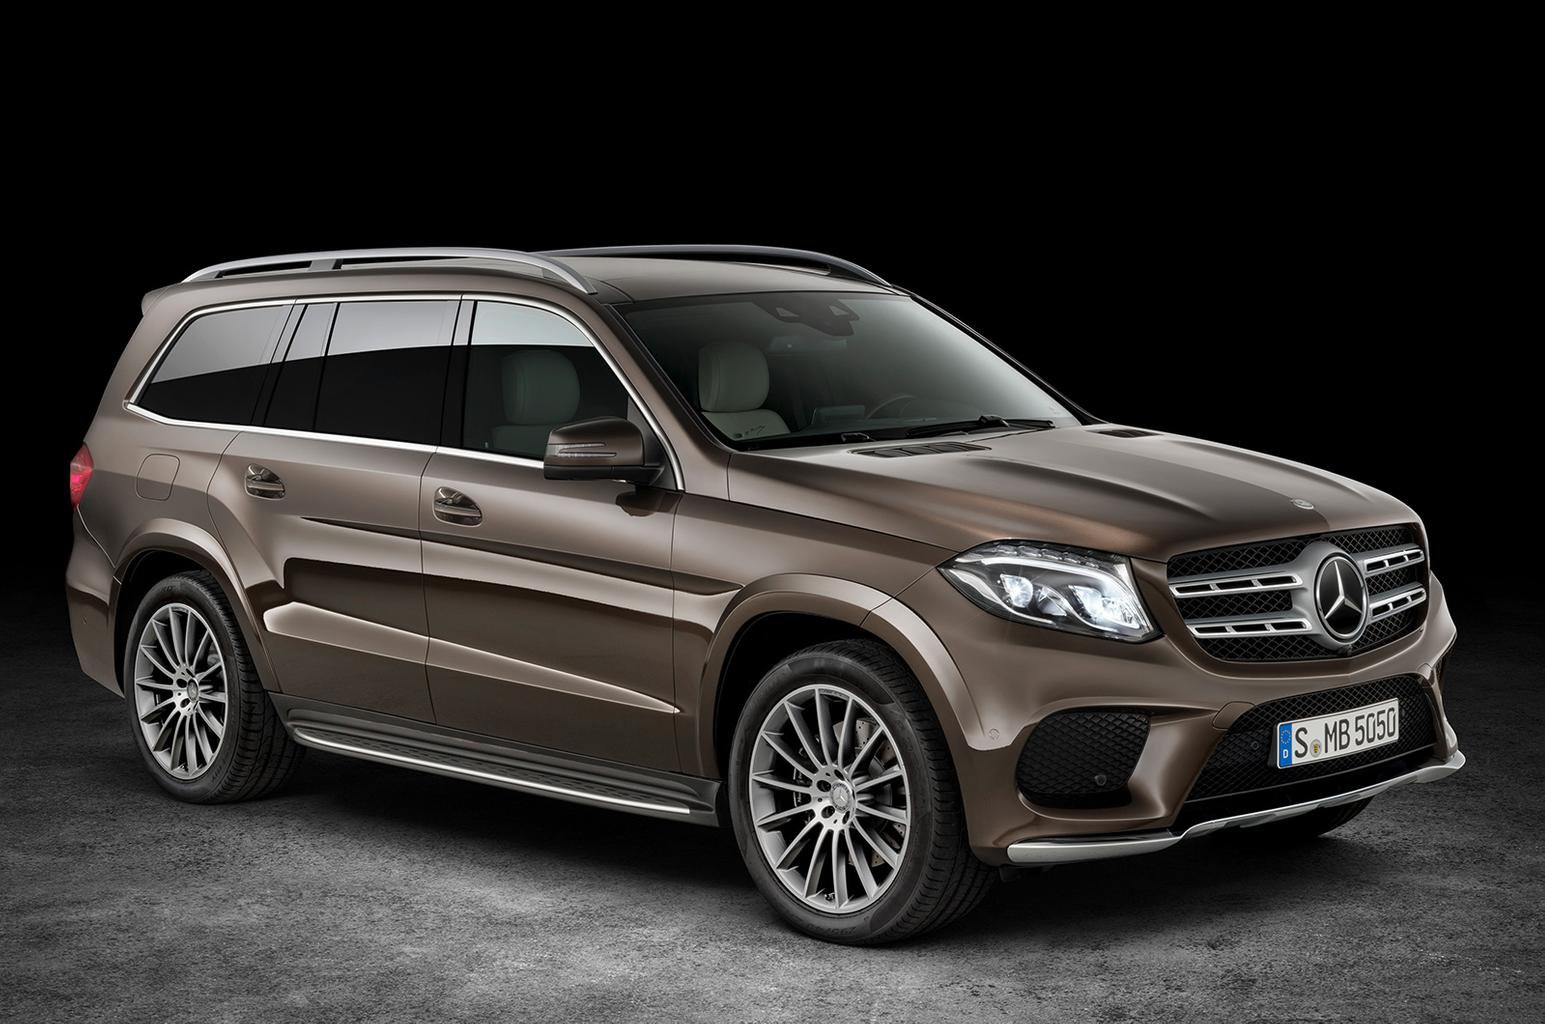 2016 Mercedes-Benz GLS revealed - pictures, pricing and engine details